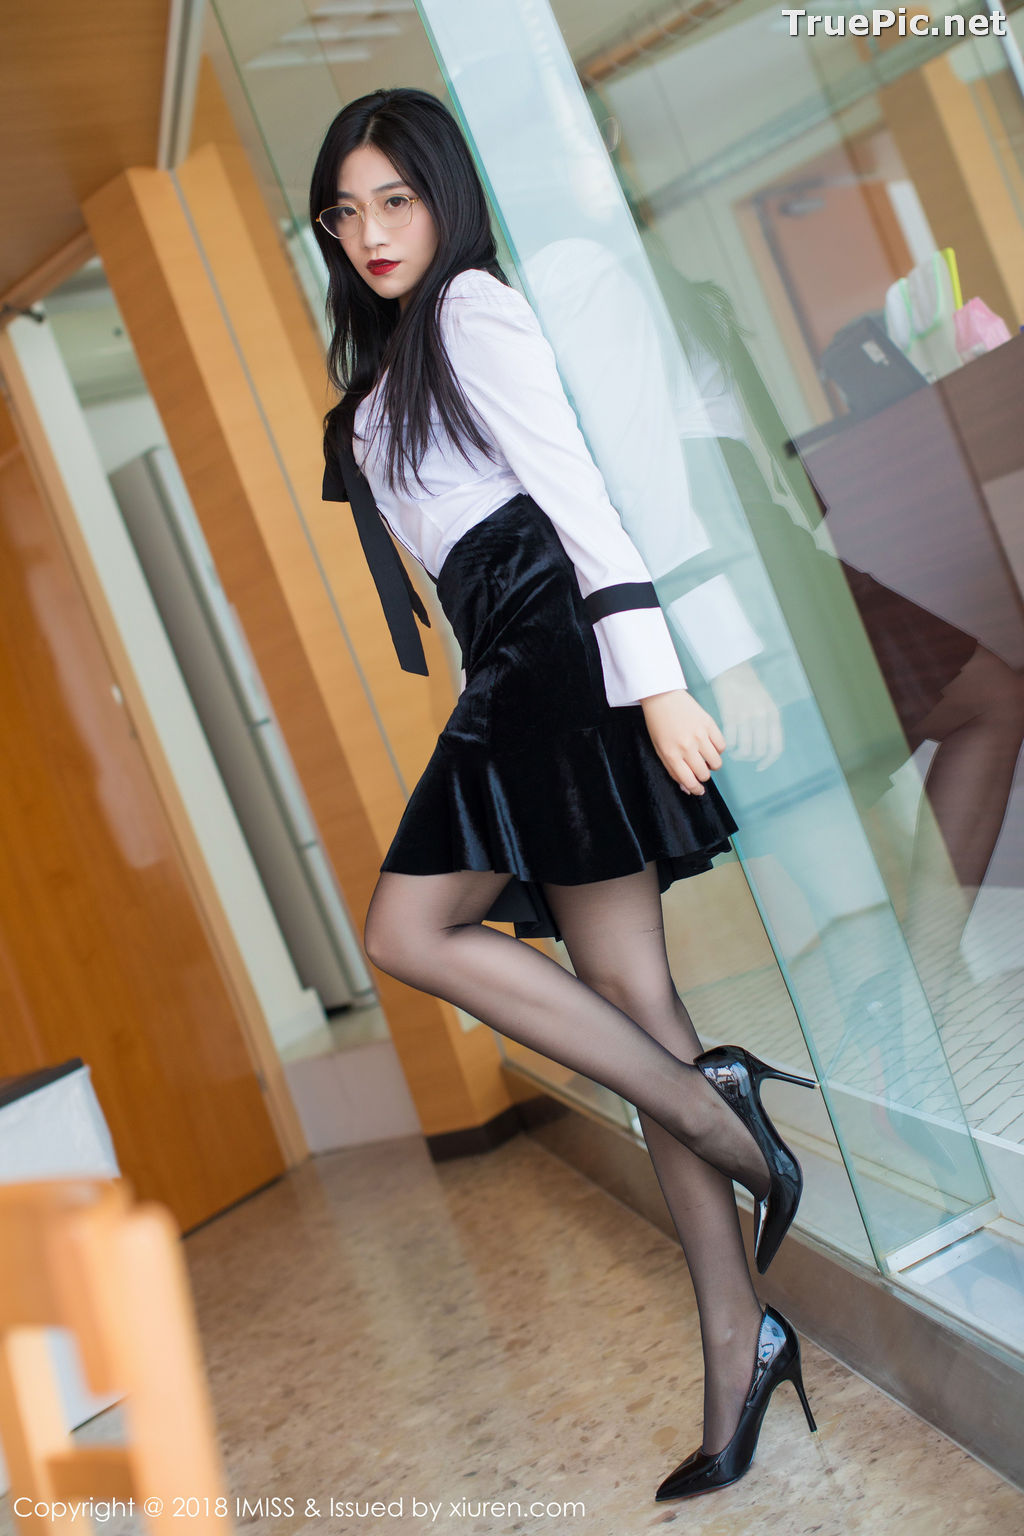 Image IMISS Vol.239 - Chinese Model - Sabrina (Xu Nuo 许诺) - Office Girl - TruePic.net - Picture-3